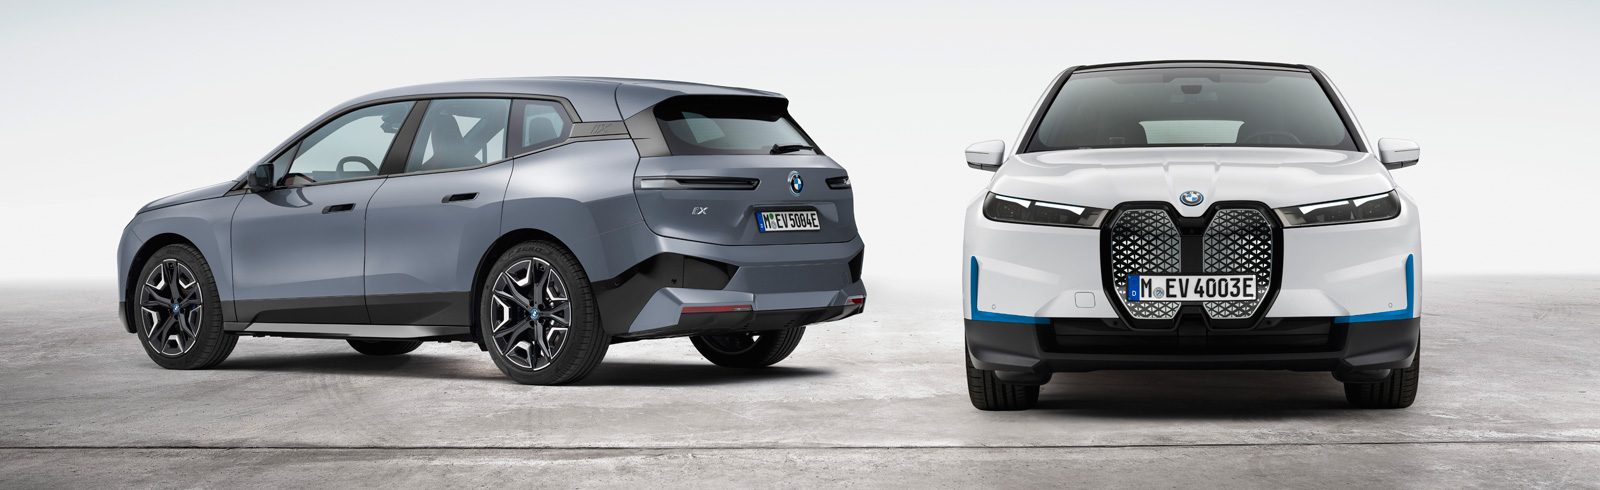 The new BMW iX xDrive40 and new BMW iX xDrive50 - main specifications and prices